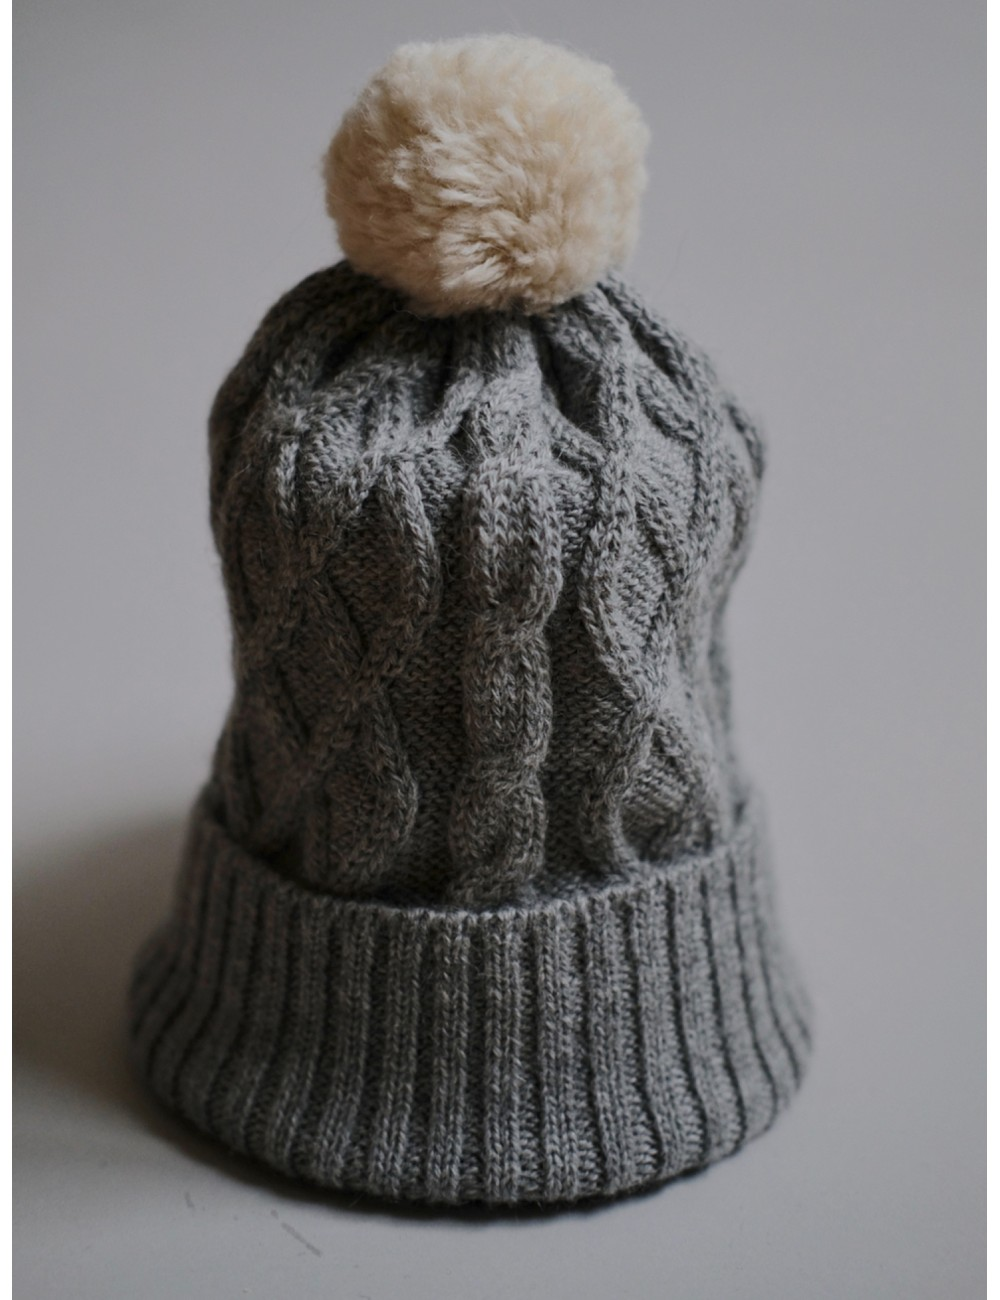 c2601d21374 Our Baby Alpaca wool hat is perfect for any occasion and easy to combine.  Super cute pom-pom hat in natural white and grey colours. Stay warm and cosy  with ...